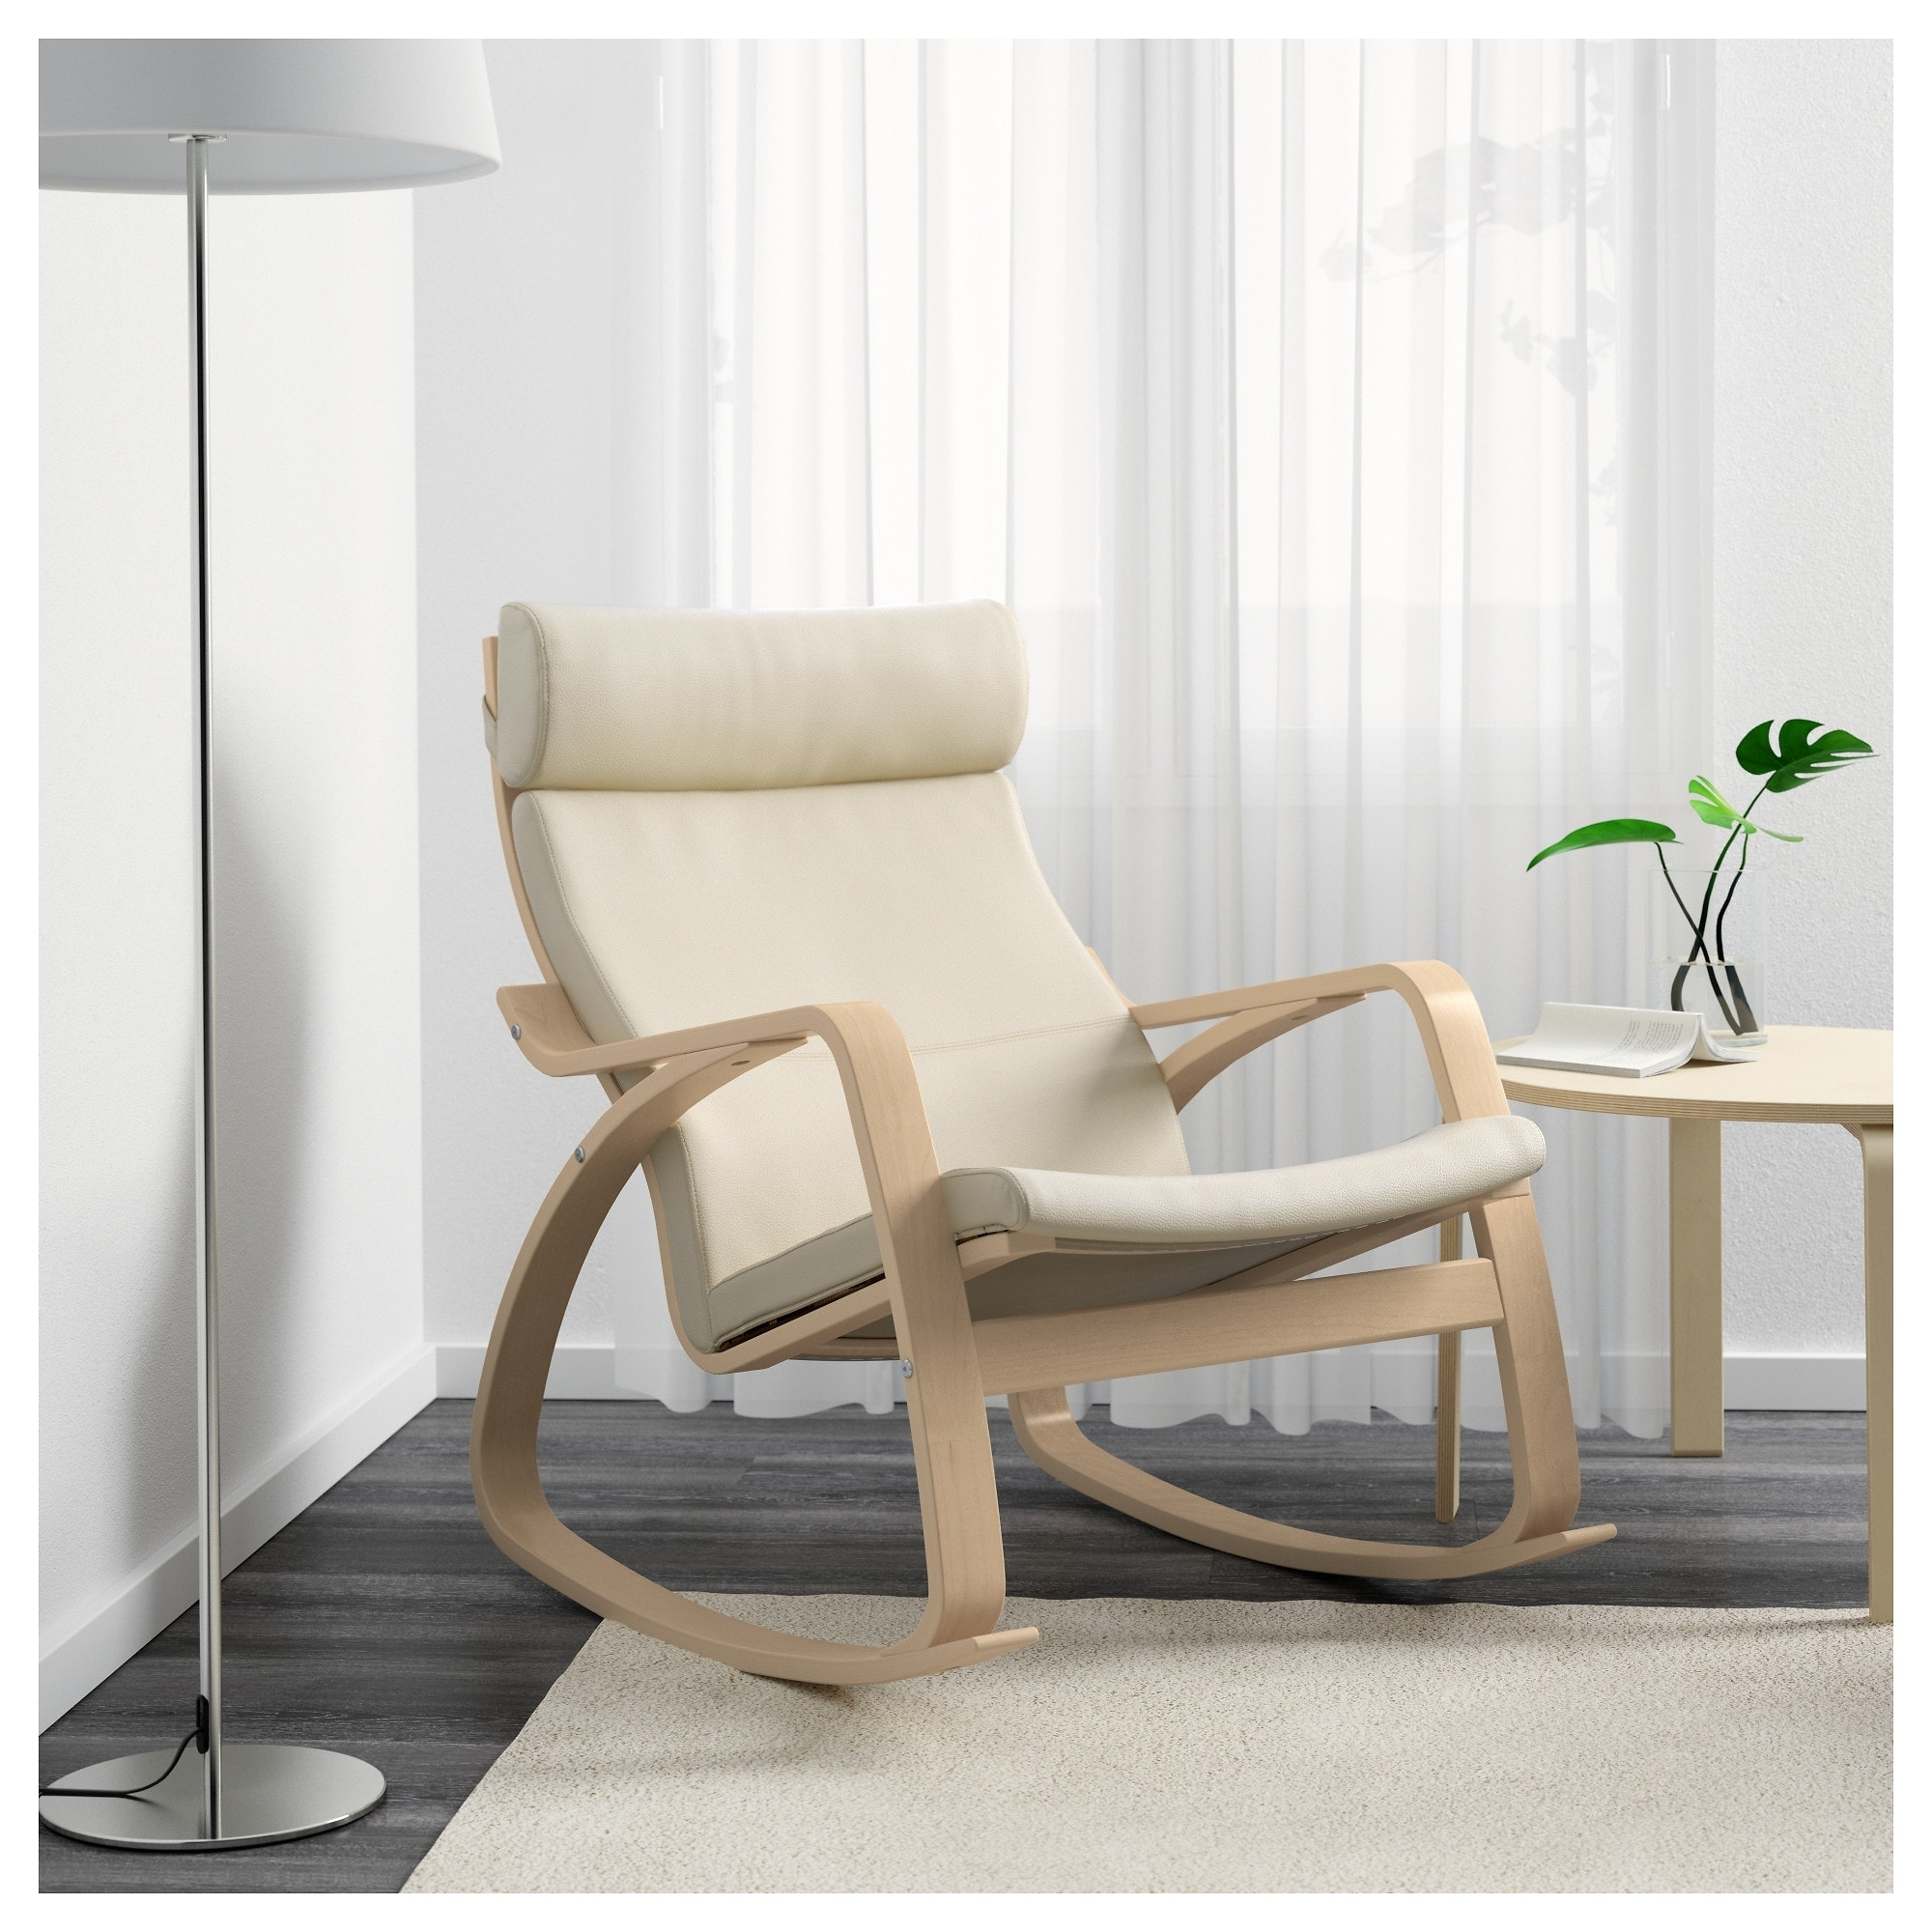 Poäng Rocking Chair Birch Veneer/glose Eggshell – Ikea With Regard To Most Recently Released Rocking Chairs For Adults (View 8 of 15)